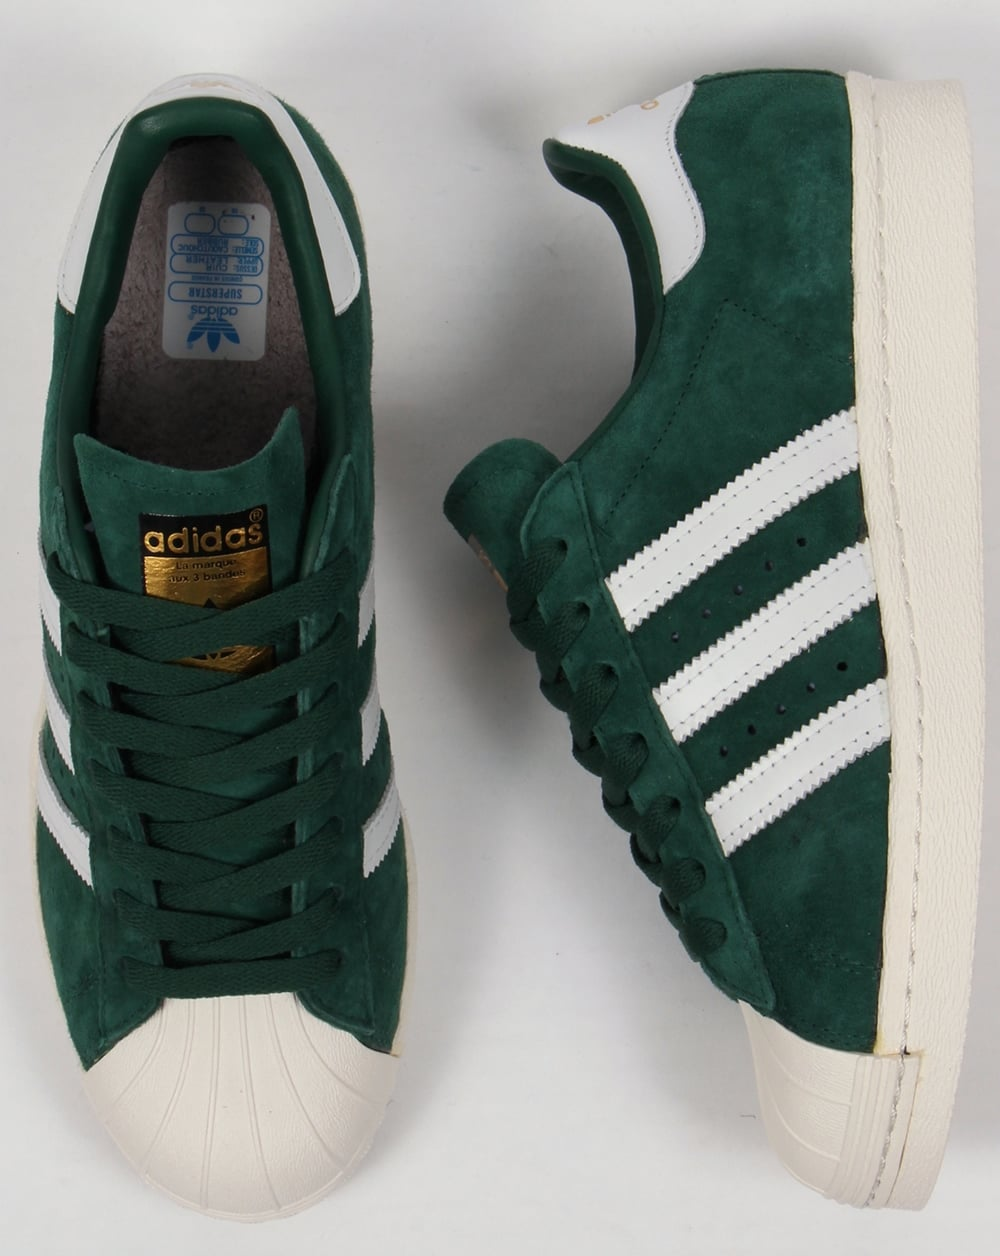 e3a4664f8e1b1 adidas superstar 80s trainers in white and green adidas stan smith ...